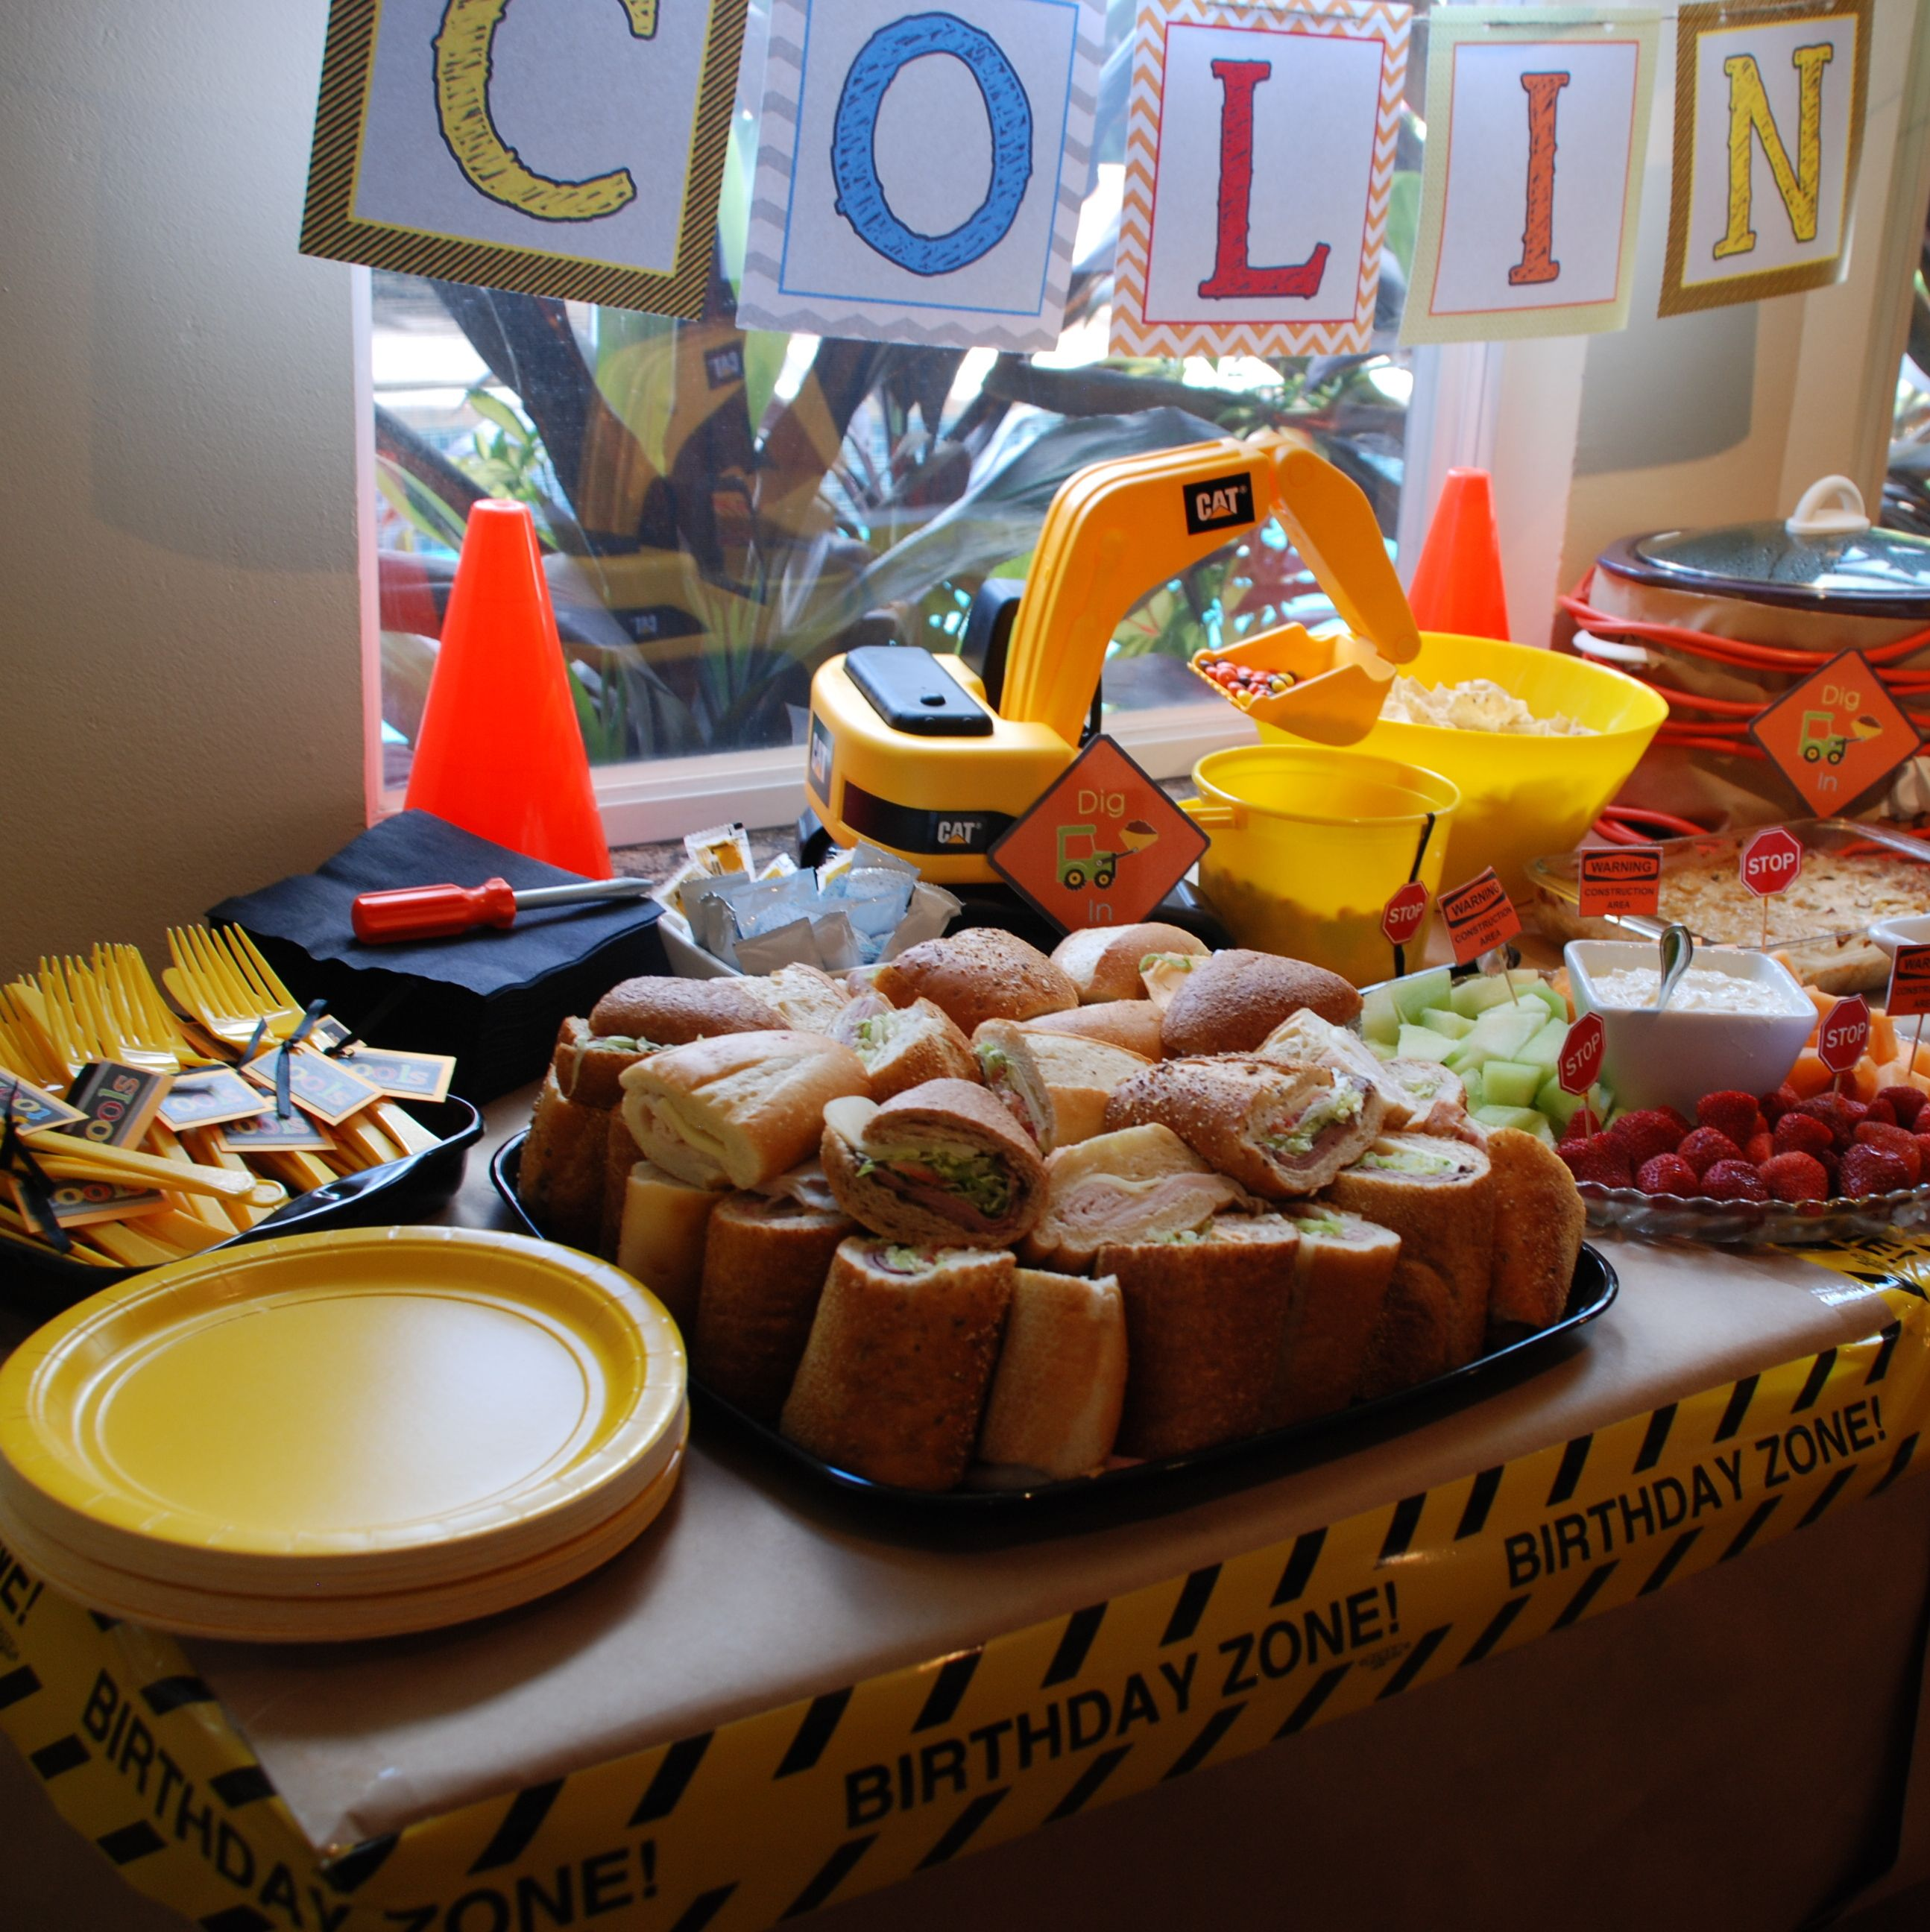 Construction birthday party food ideas more for Construction cuisine